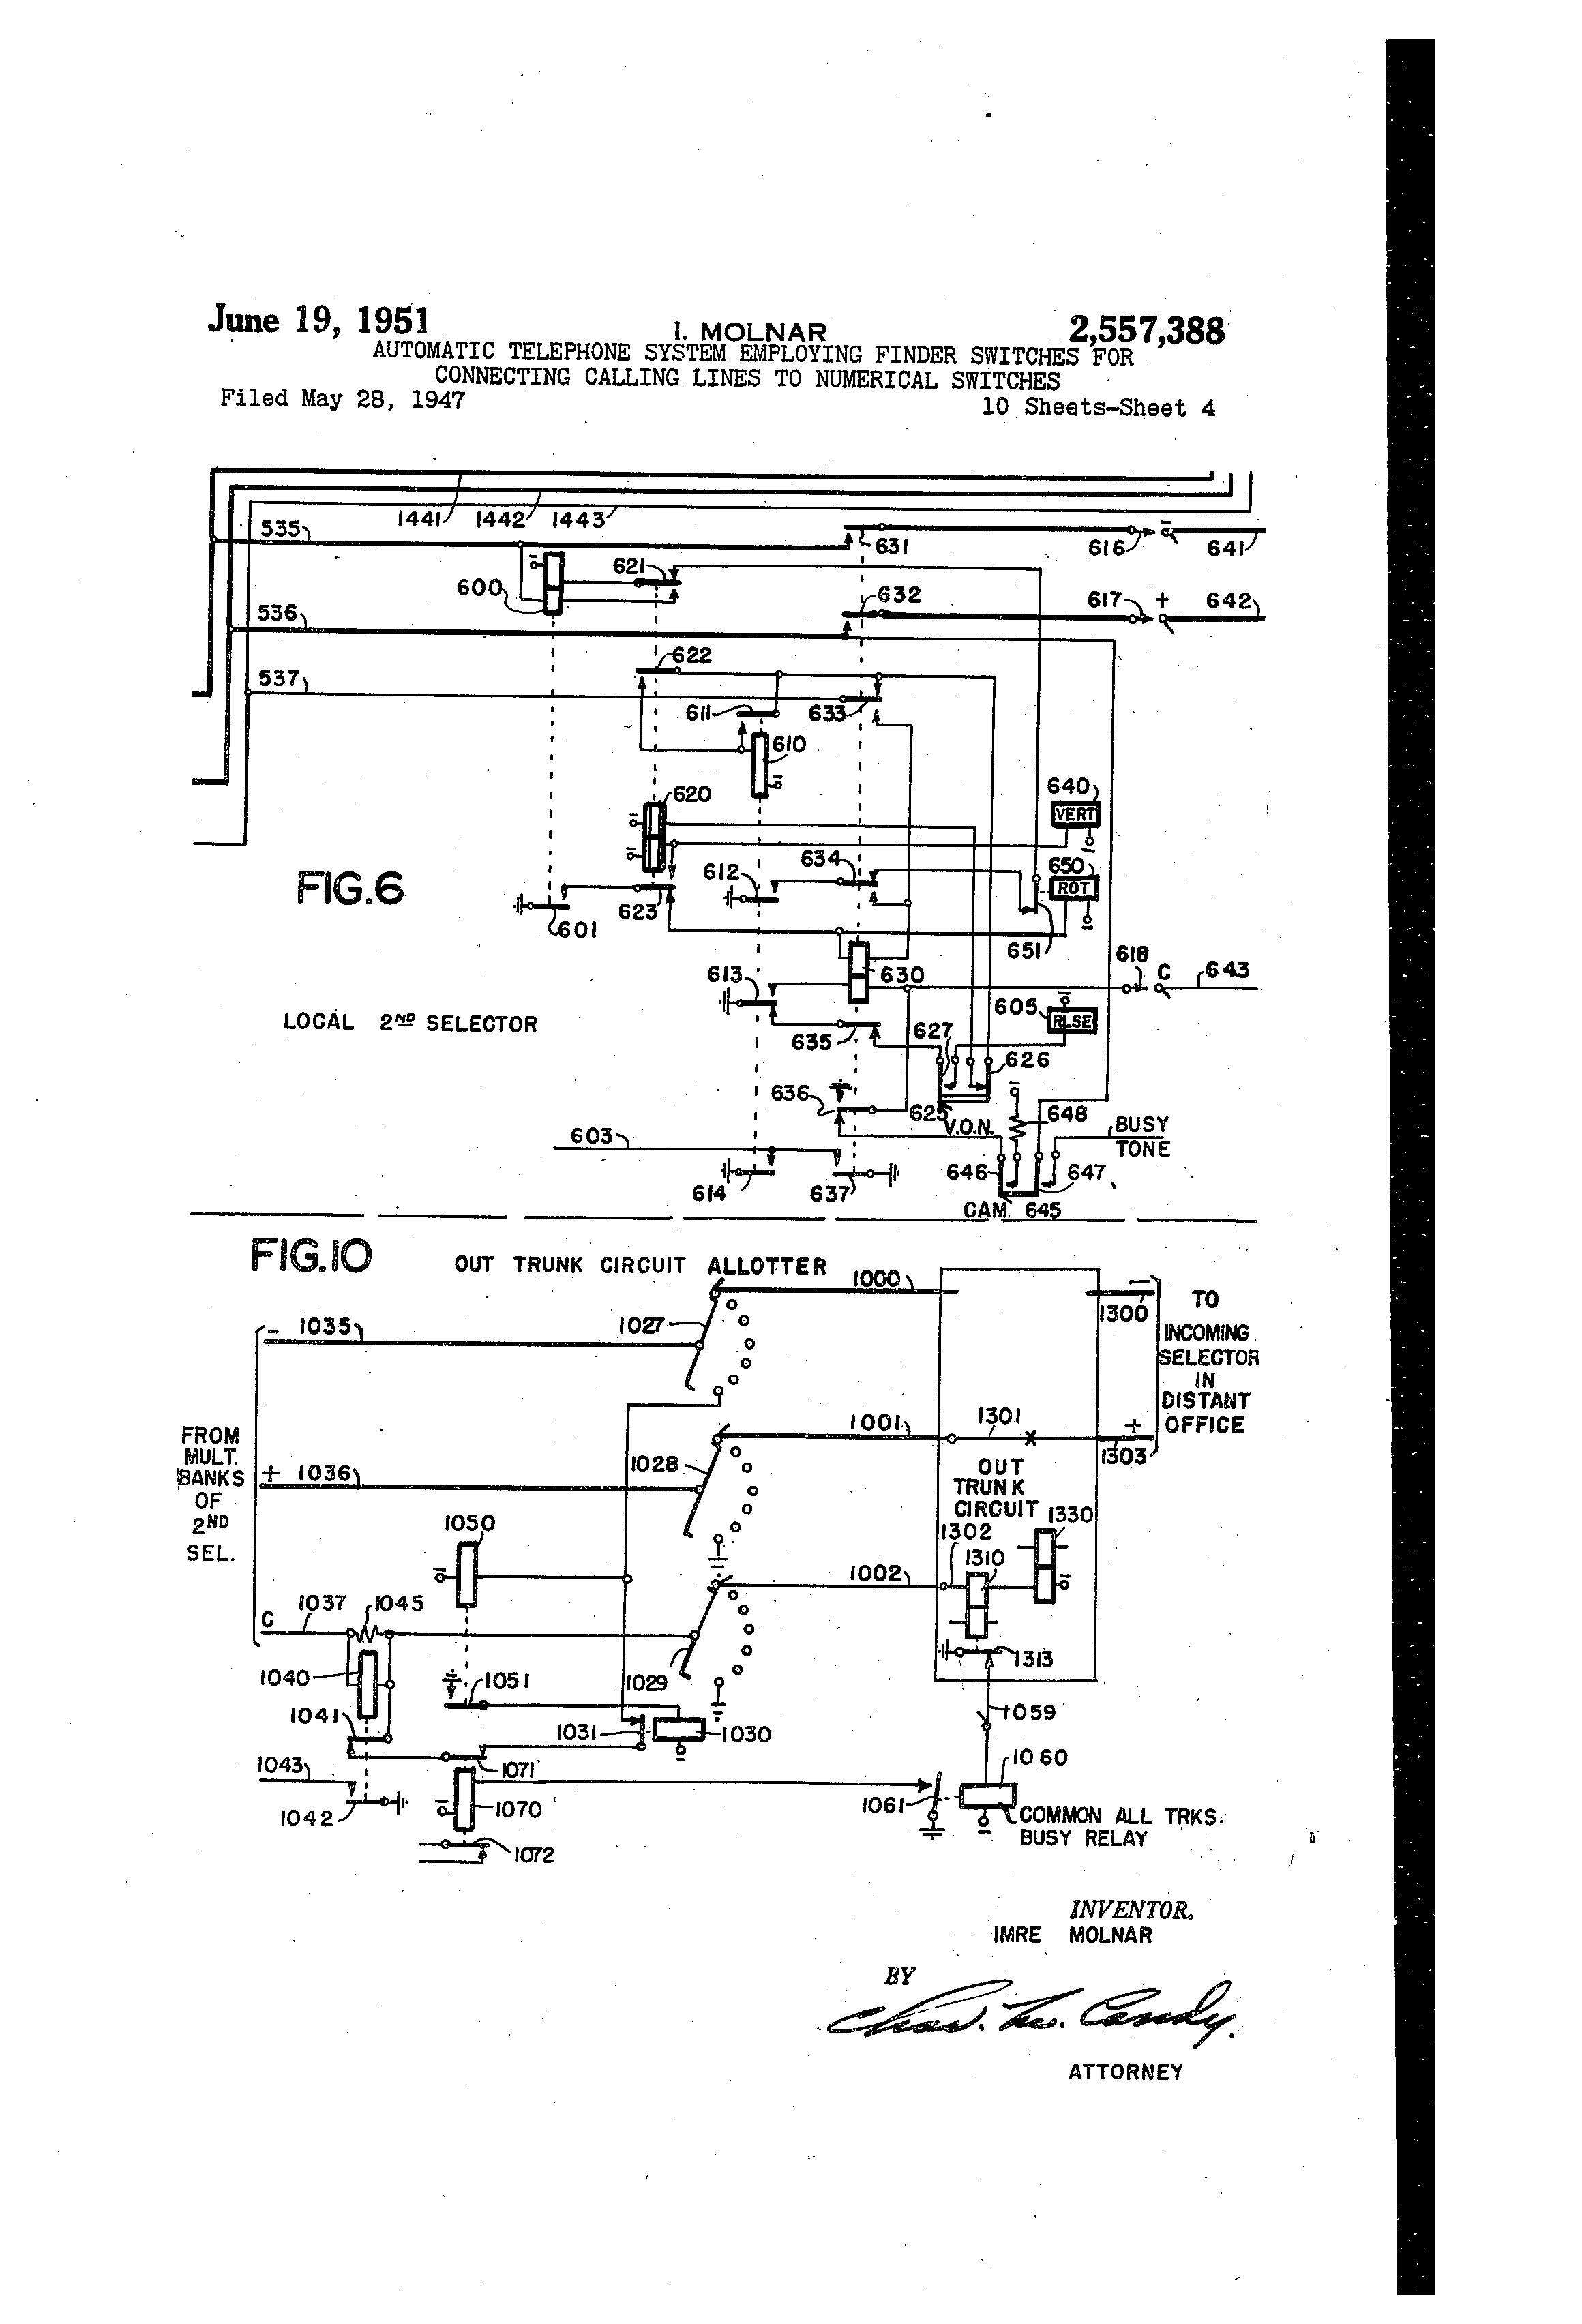 Edwards 592 Wiring Diagram 26 Wiring Diagram Images Wiring Diagrams ...